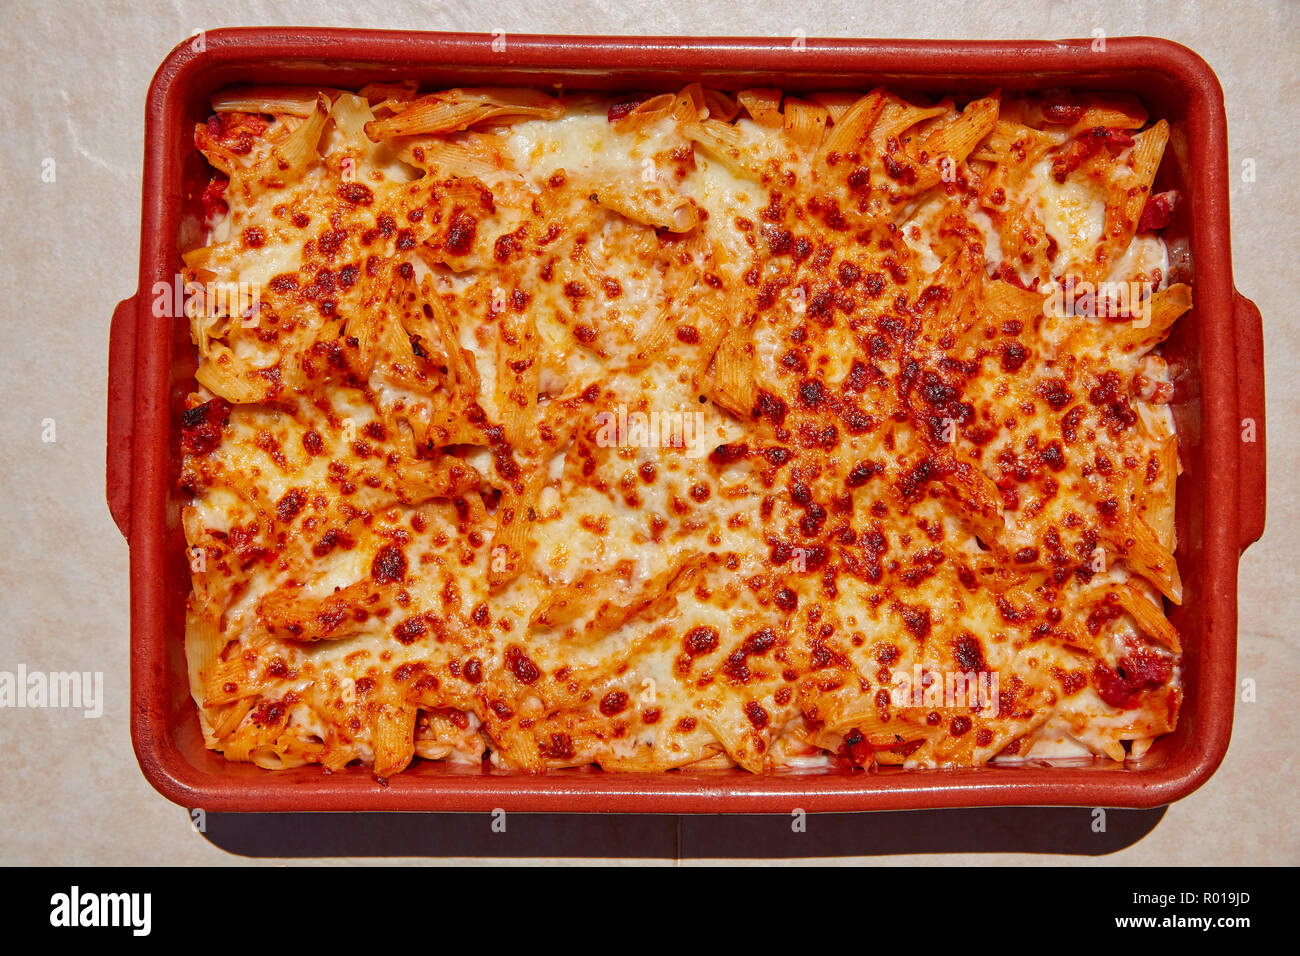 Bolognese macaroni gratinated with cheese in a clay pot - Stock Image